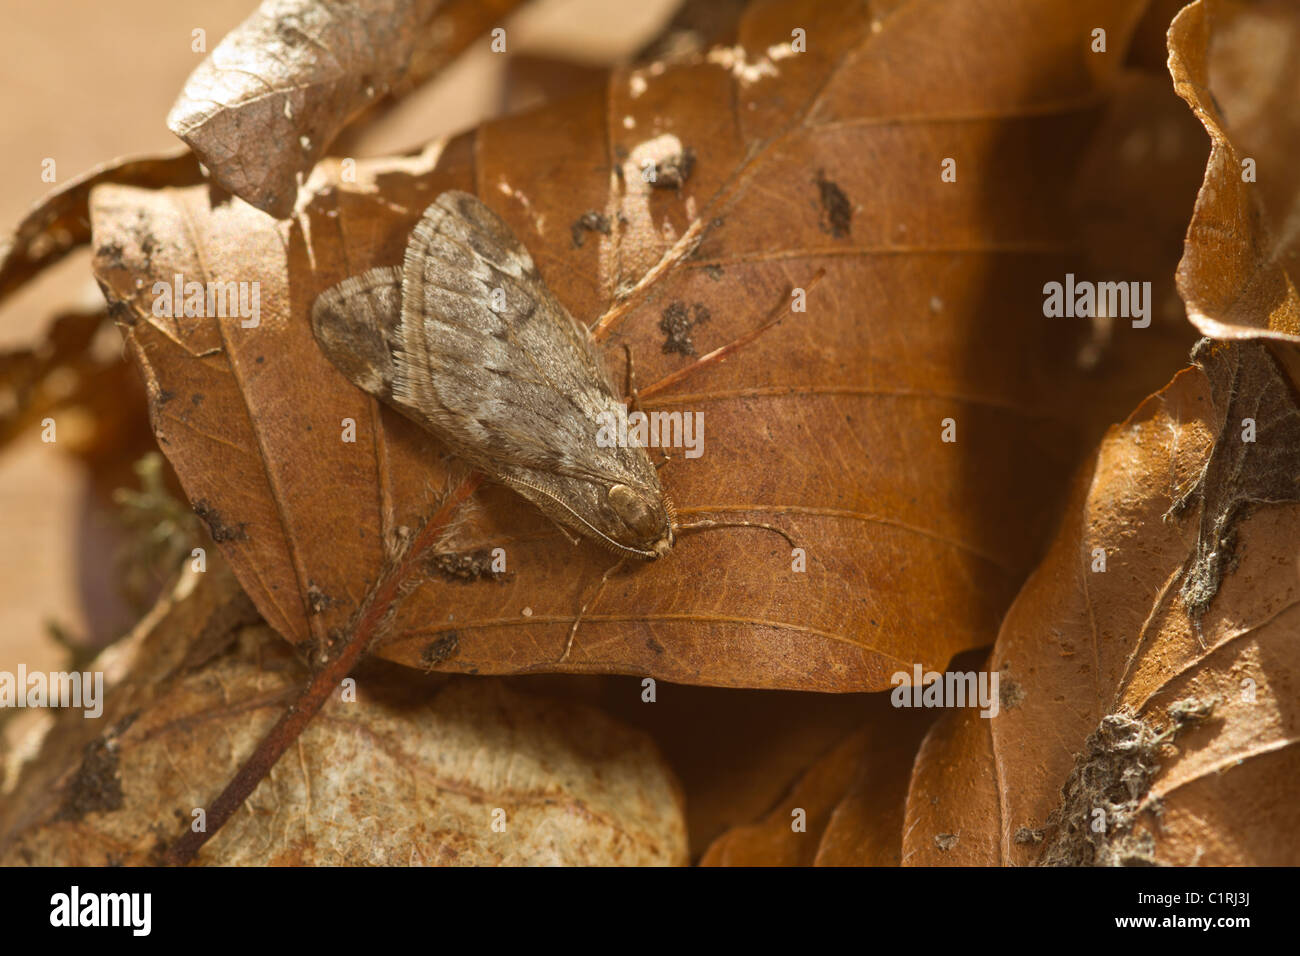 March Moth (Alsophila aescularia) resting on fallen winter leaves - Stock Image